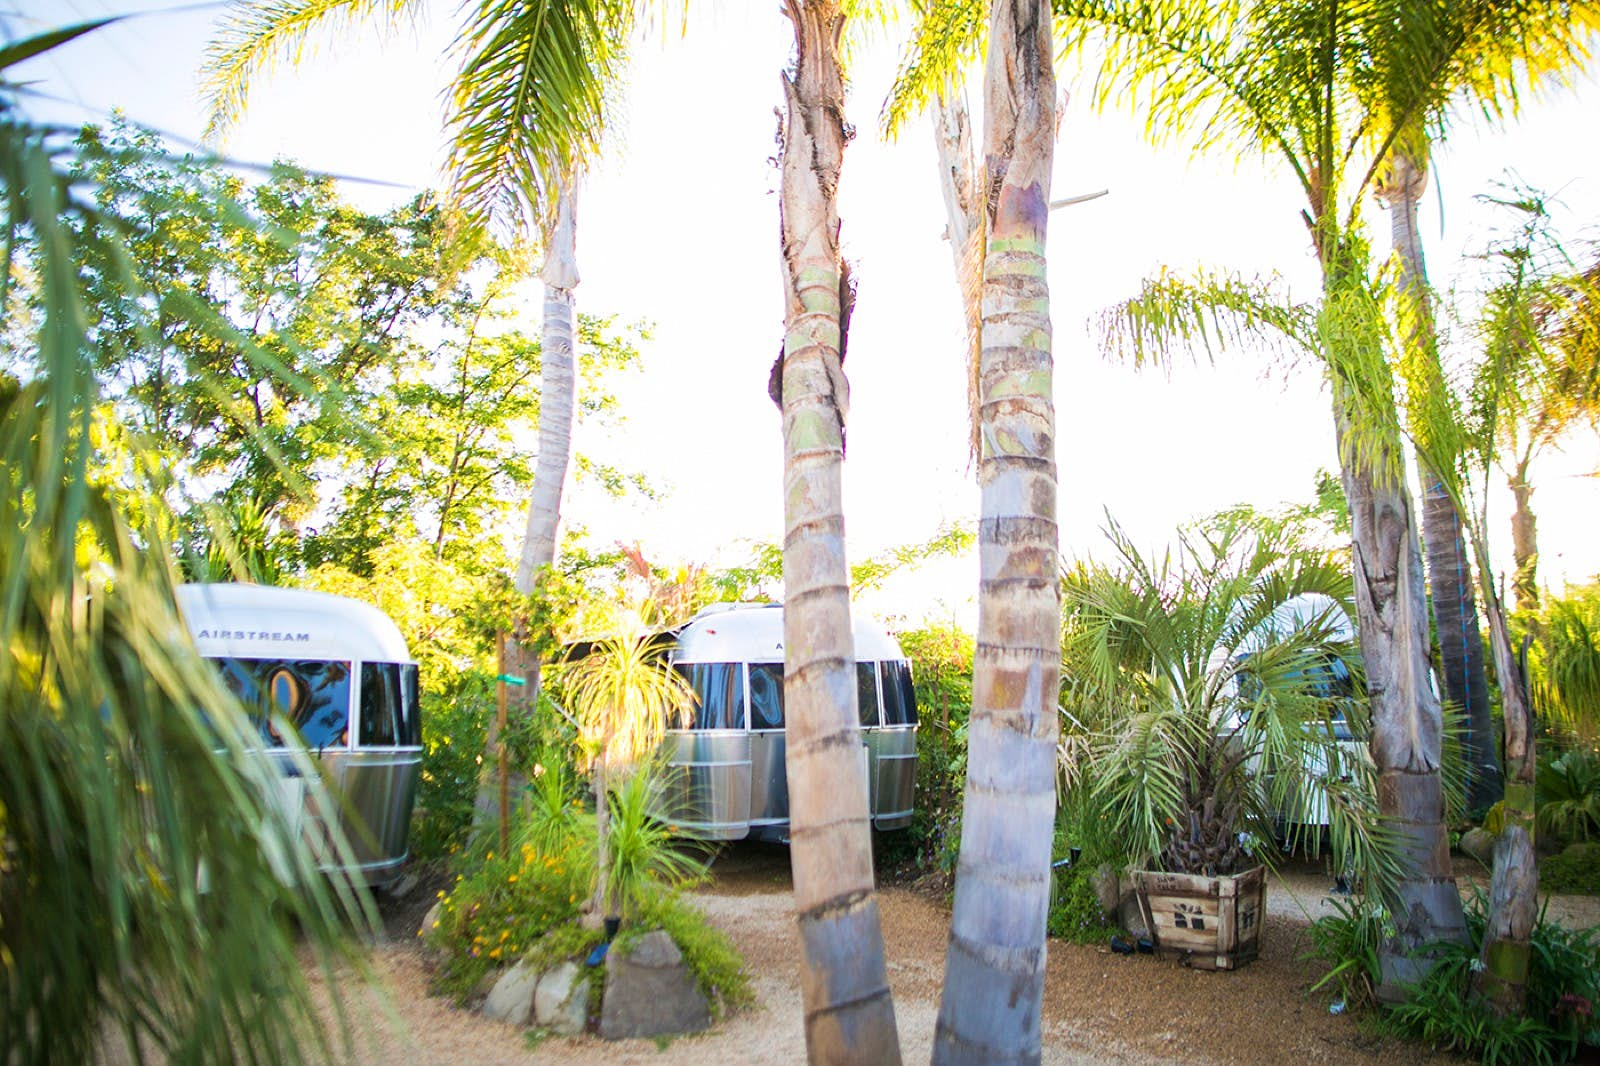 Silver airstream trailers shine in the sun under palm trees